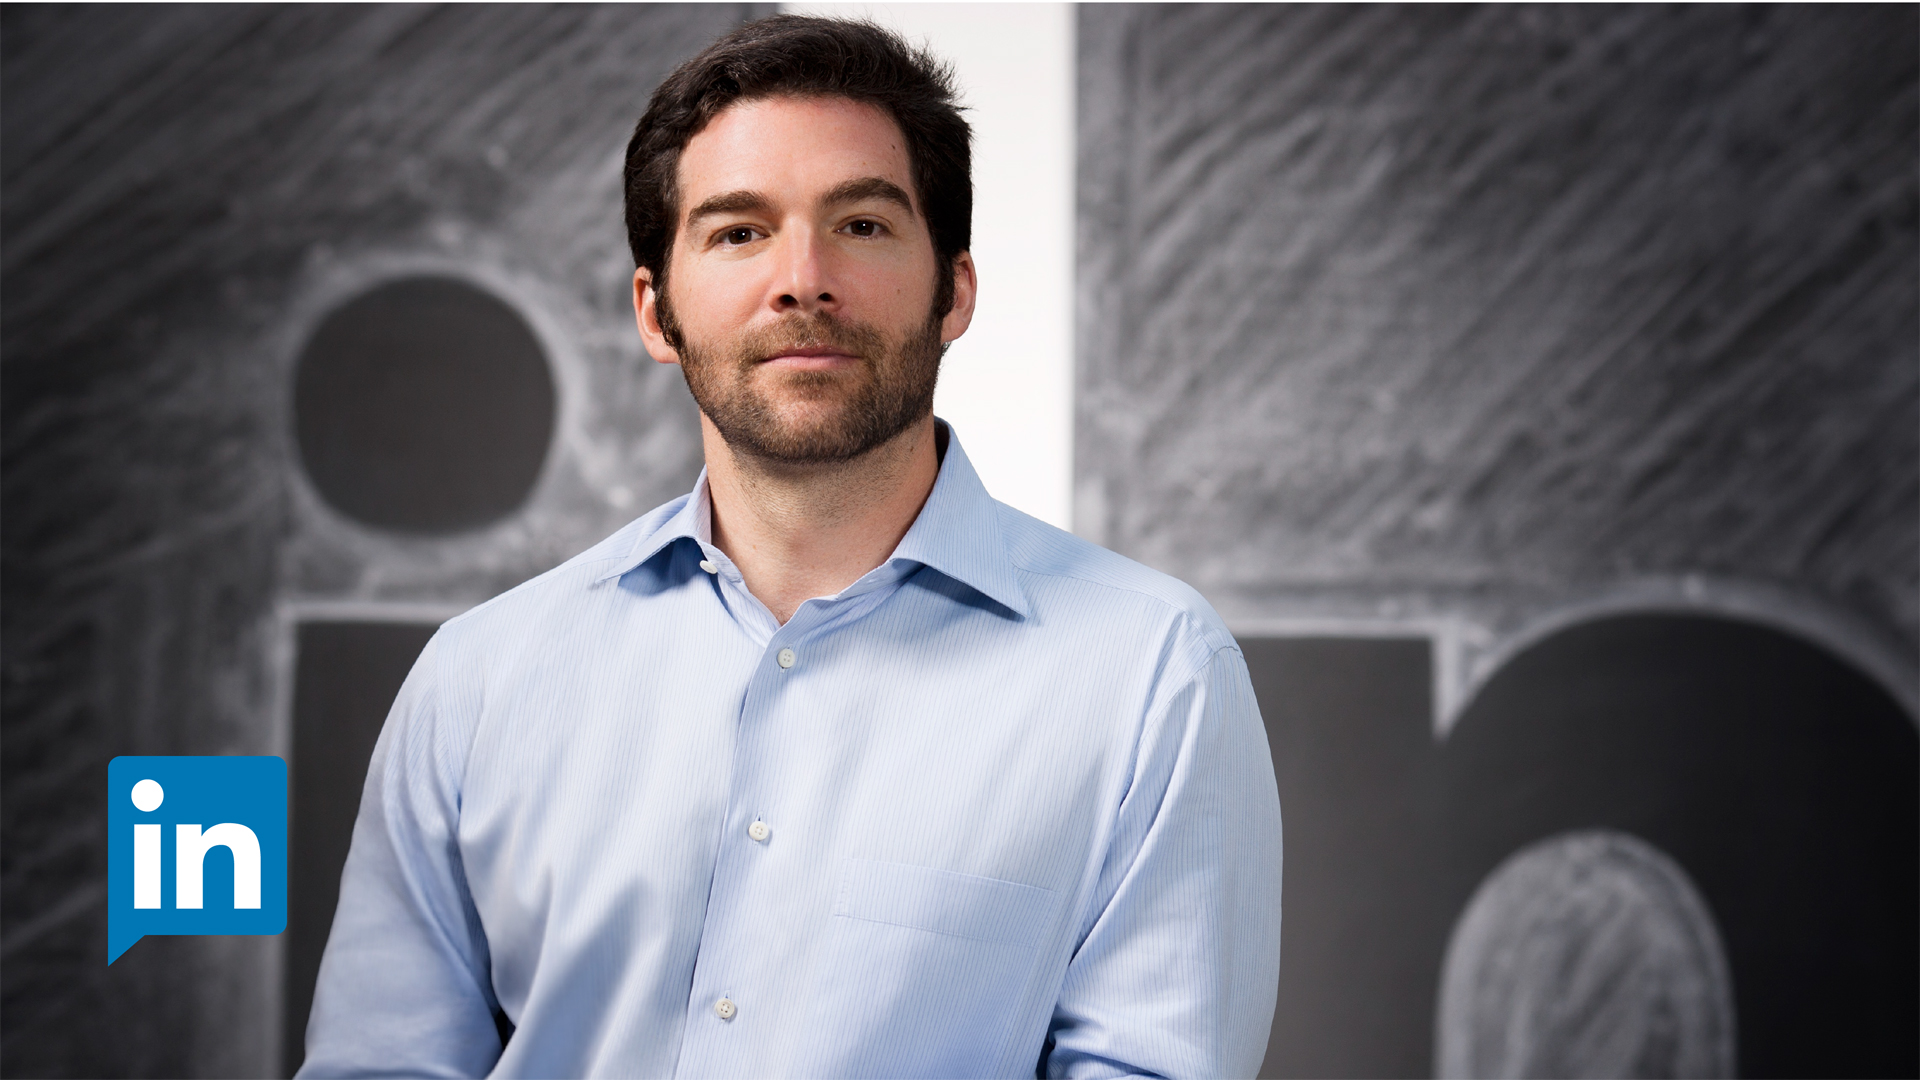 What were your initial observations of LinkedIn?: Jeff Weiner on Establishing a Culture and a Plan for Scaling